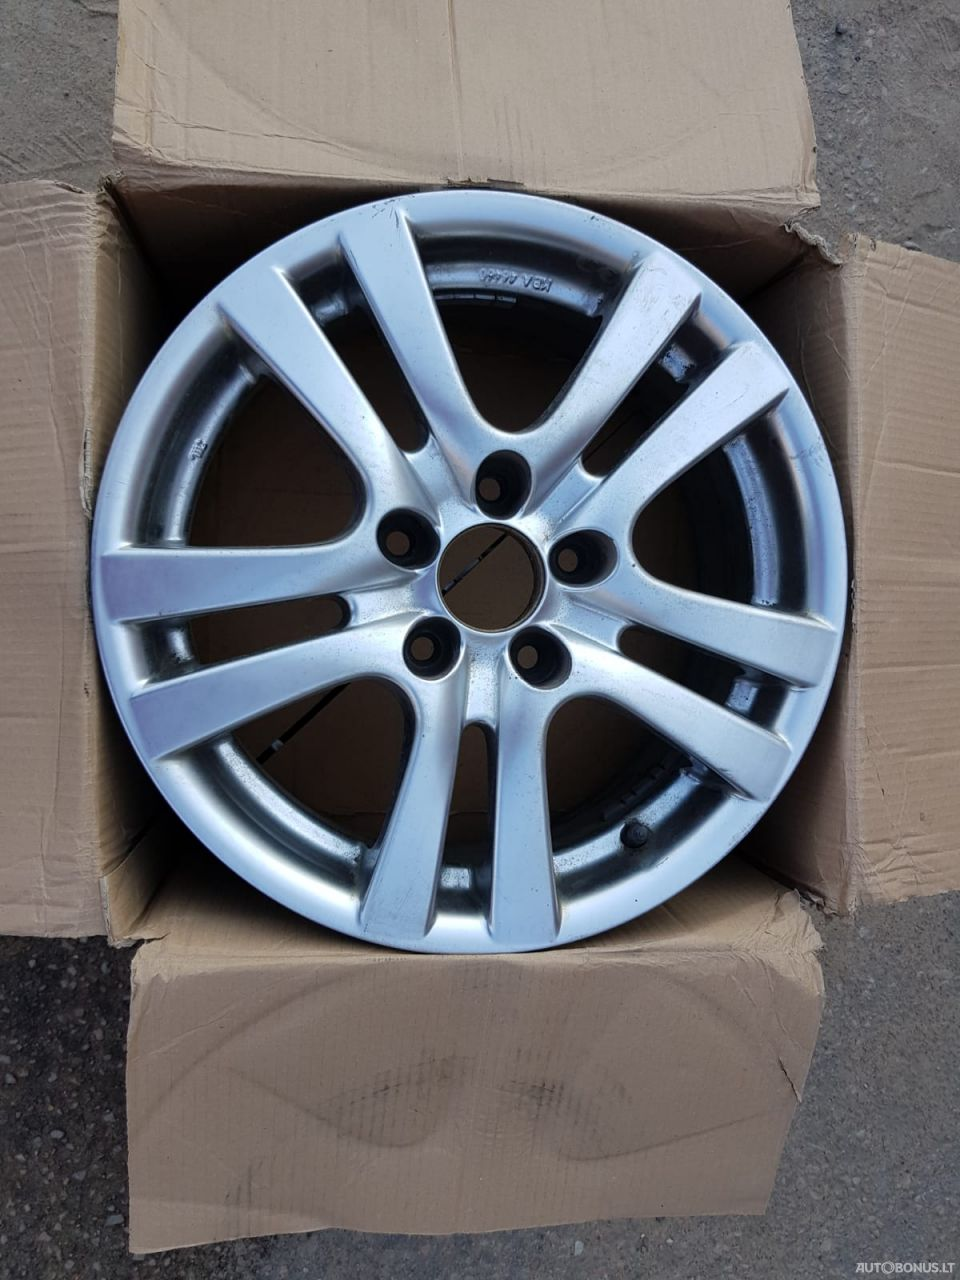 Light alloy rims